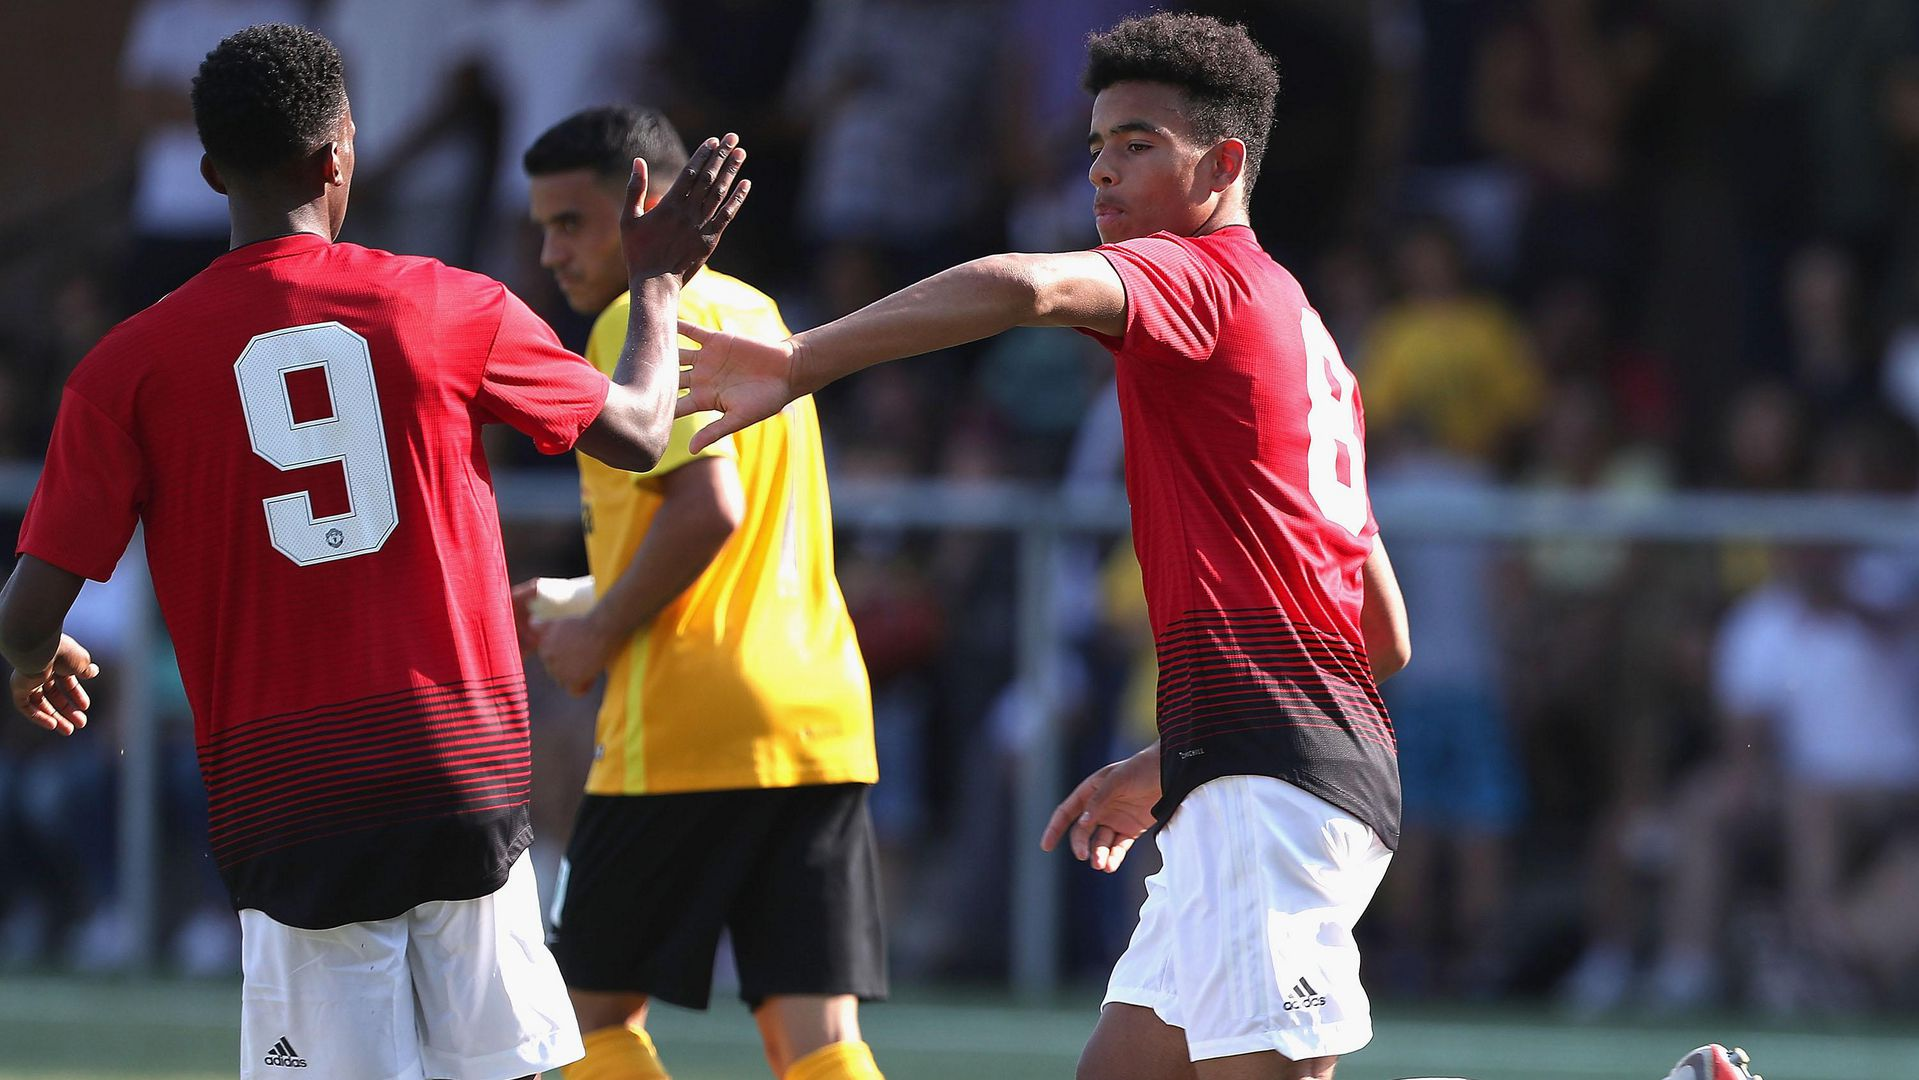 Under 19s Report Young Boys 1 Man United 2 Manchester United